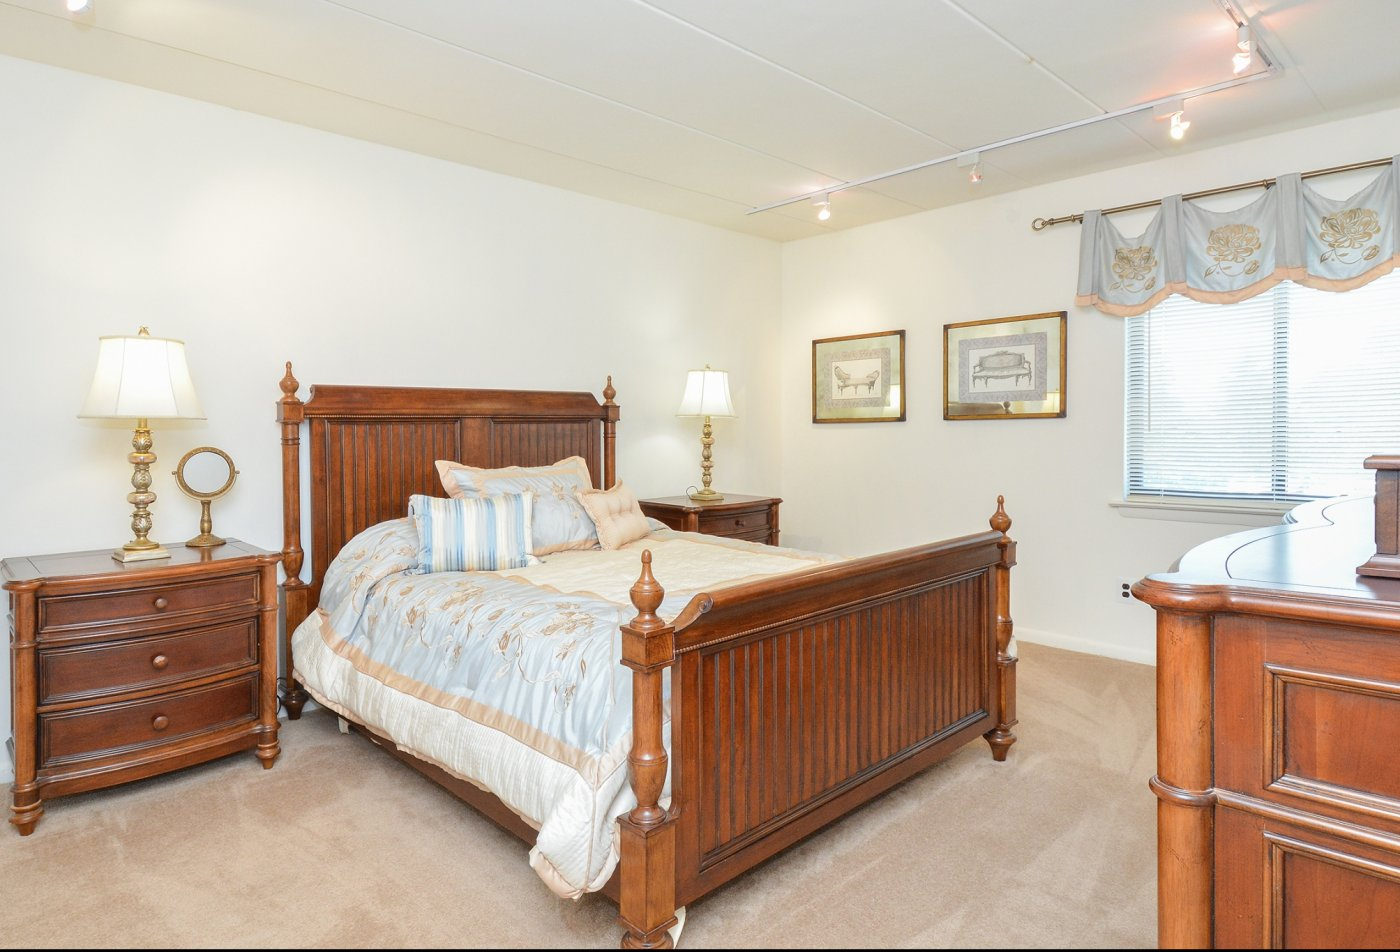 Spacious Master Bedroom   Apartments Homes for rent in Wilmington, DE   Fairway Park Apartments & Townhomes